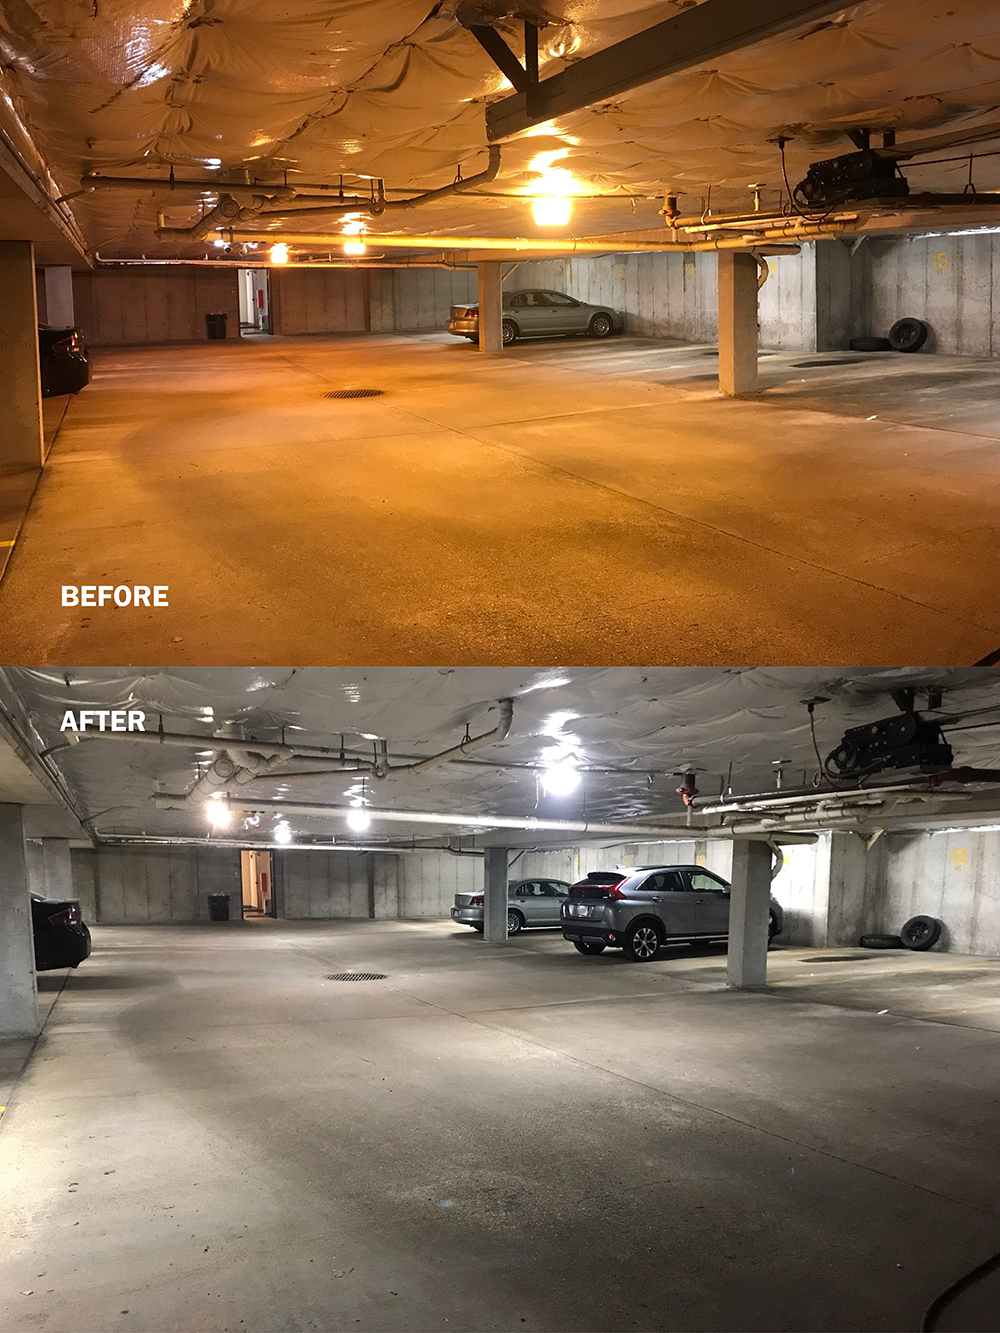 "Two pictures of an indoor parking garage are juxtaposed, with the words ""before"" and ""after"" written on them. One image shows darker lighting and the other shows brighter, more illuminated lighting."